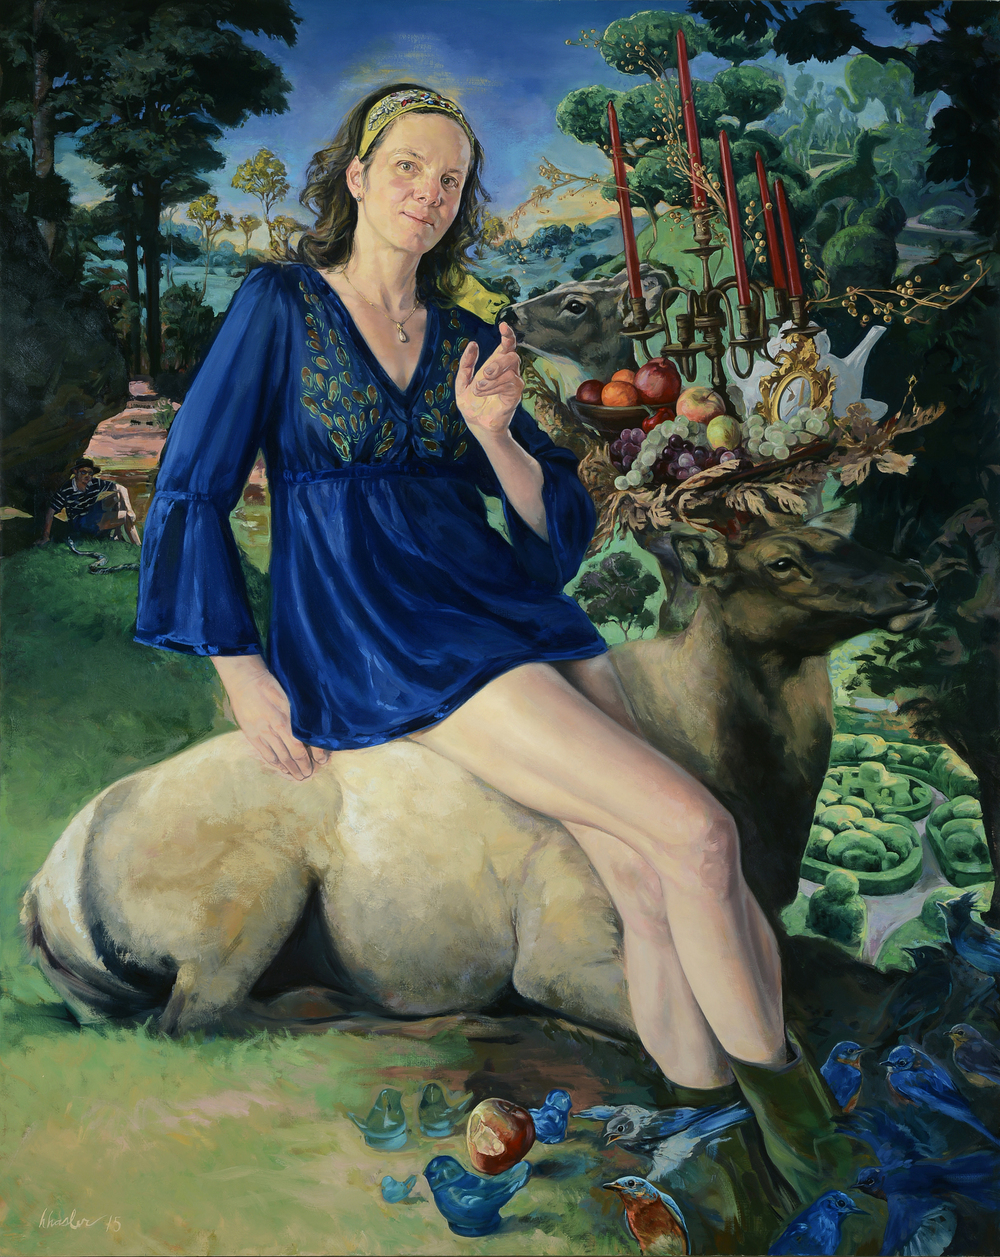 Eve Invents the Bluebird of Happiness While Adam Minds the Snake, 2015 oil on canvas, 60 x 48 inches